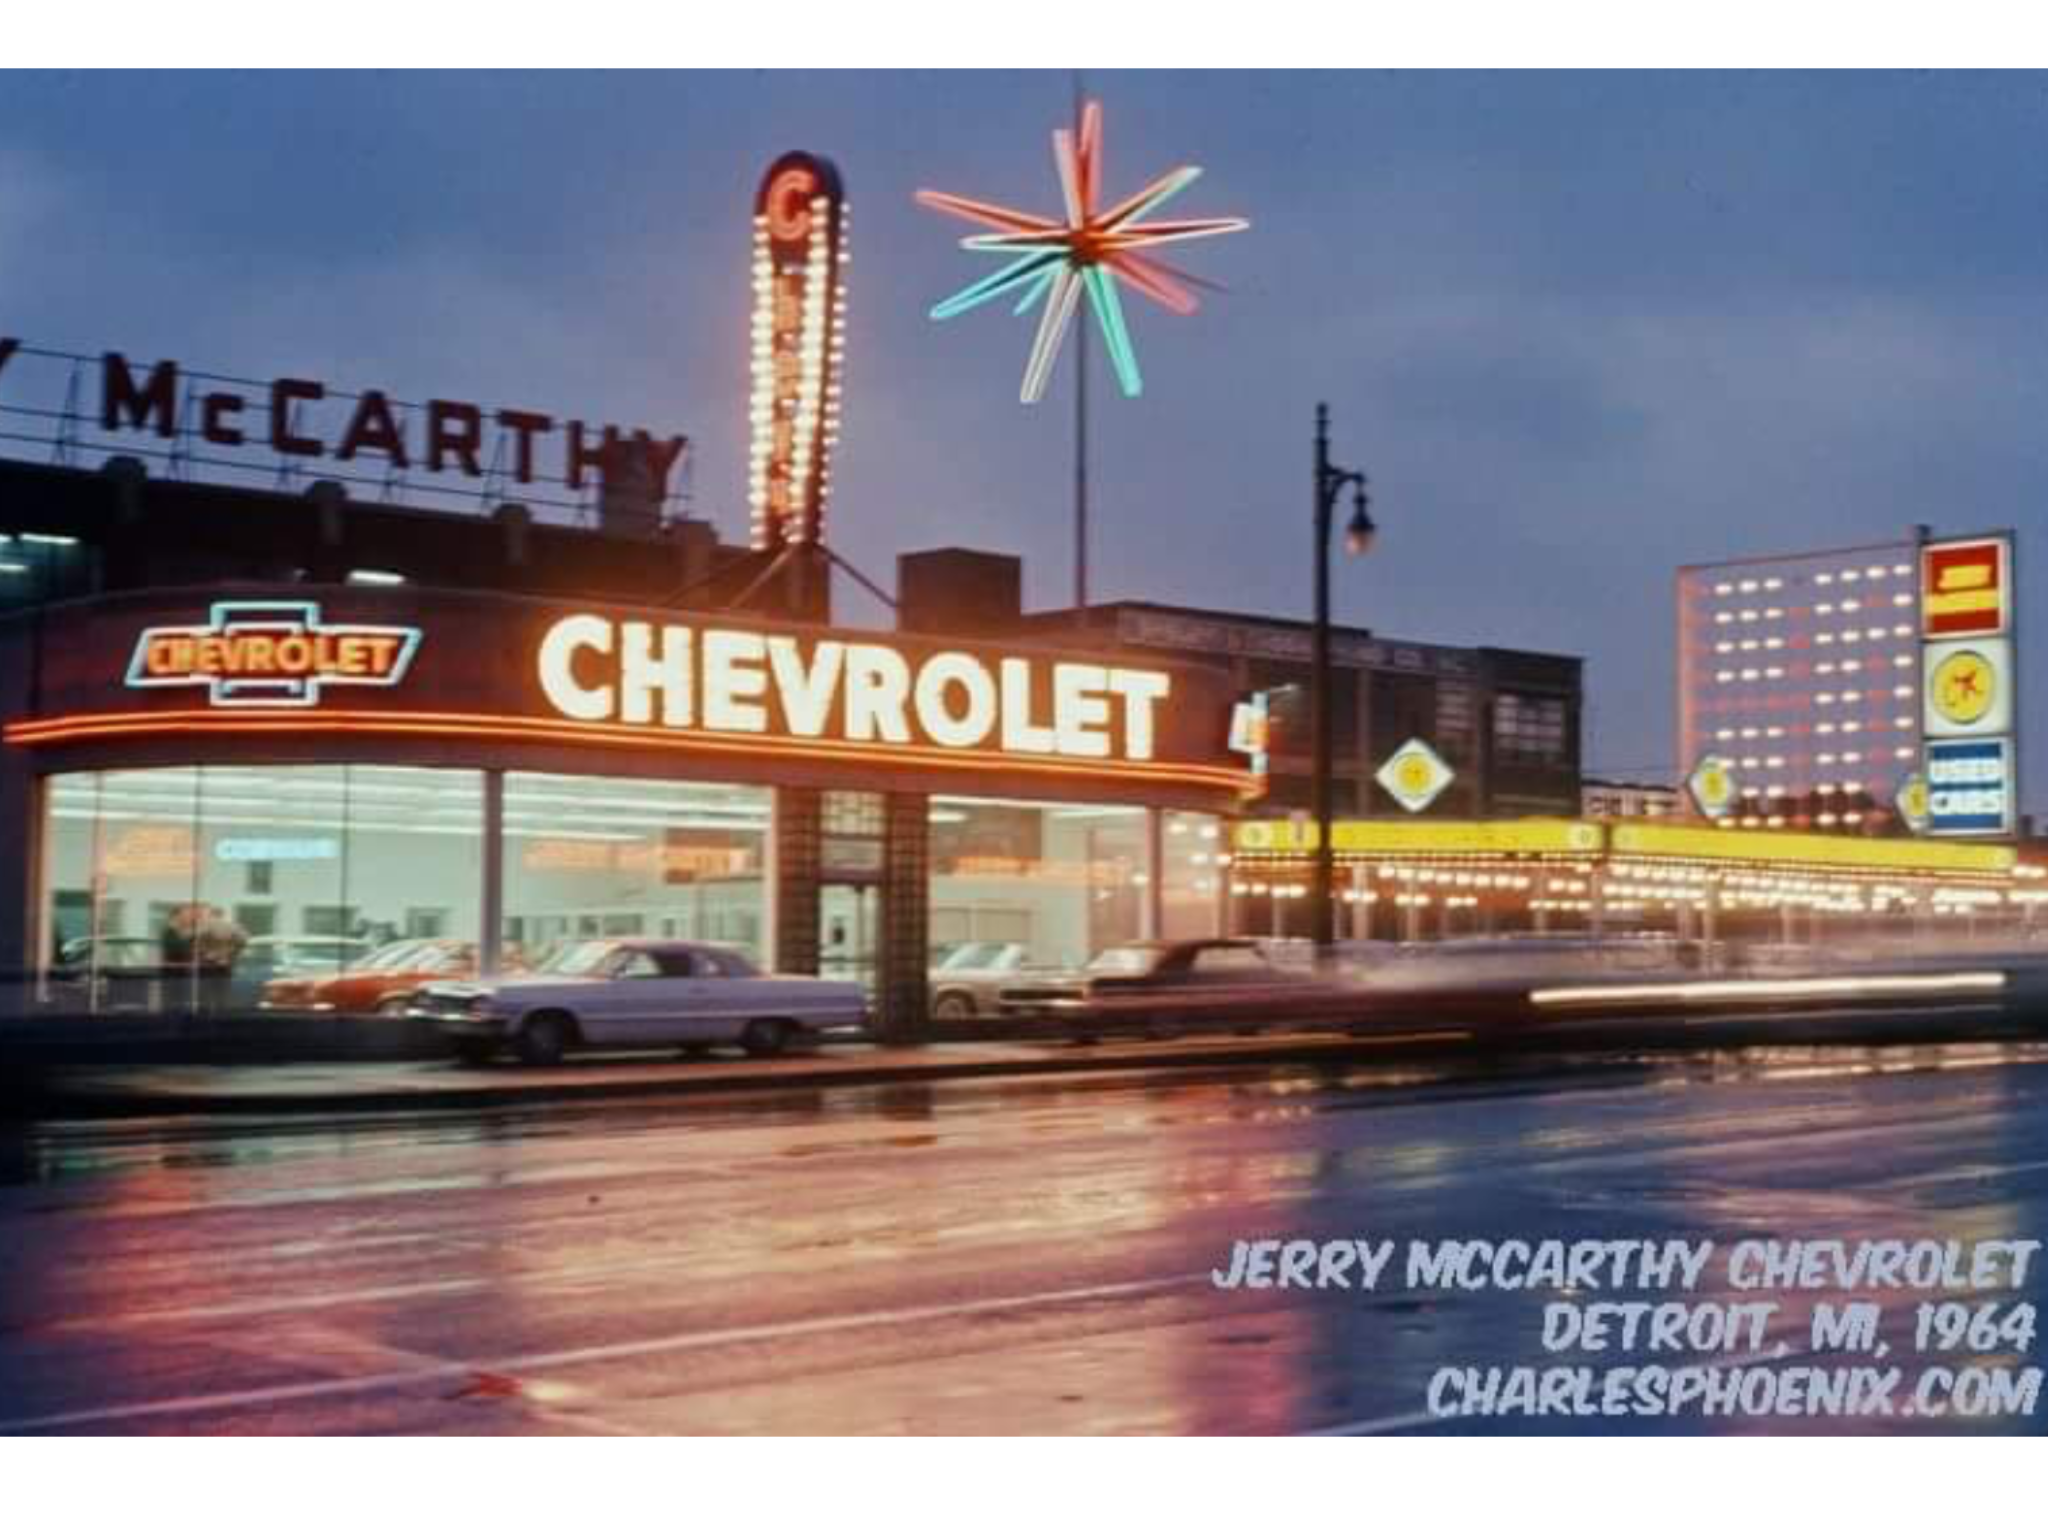 1964 Jerry McCarthy Chevrolet Dealership, Detroit ...